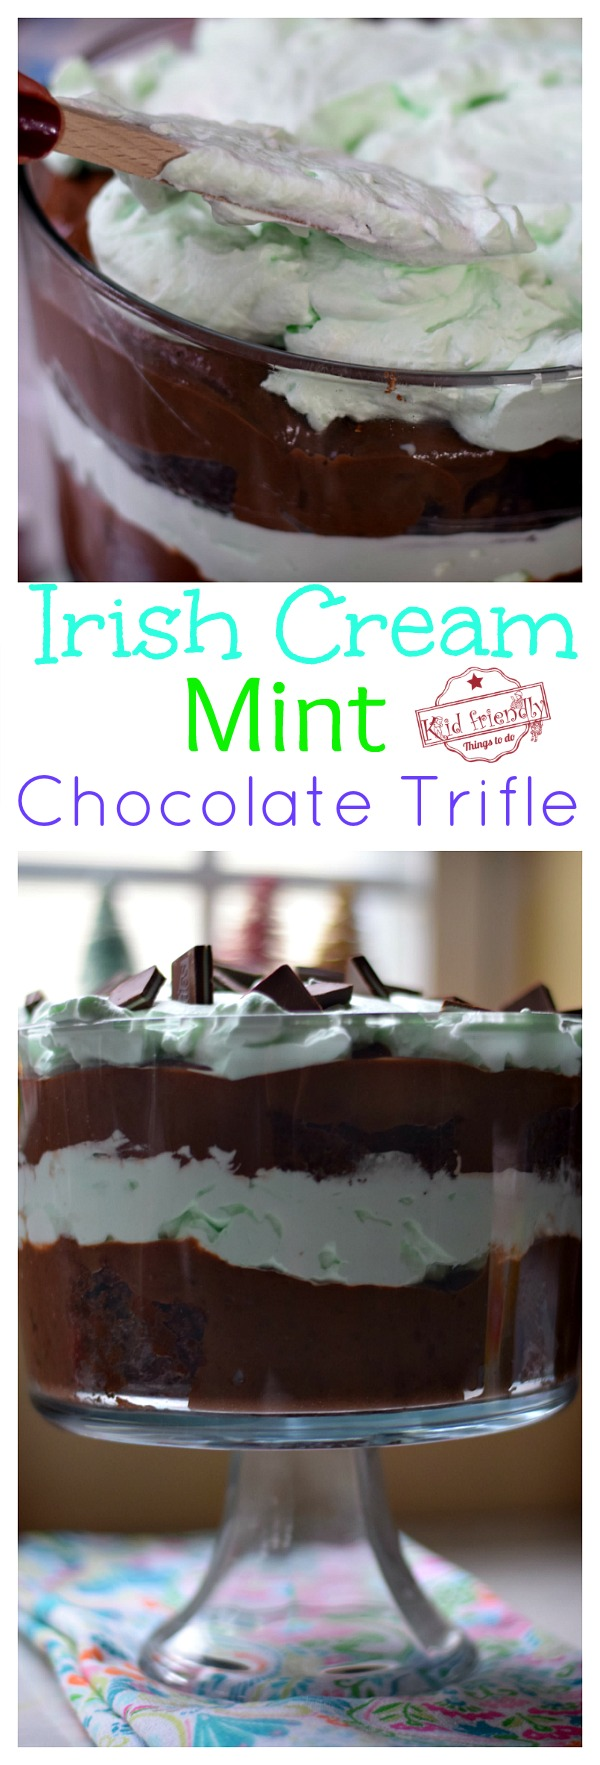 Mint Chocolate Trifle